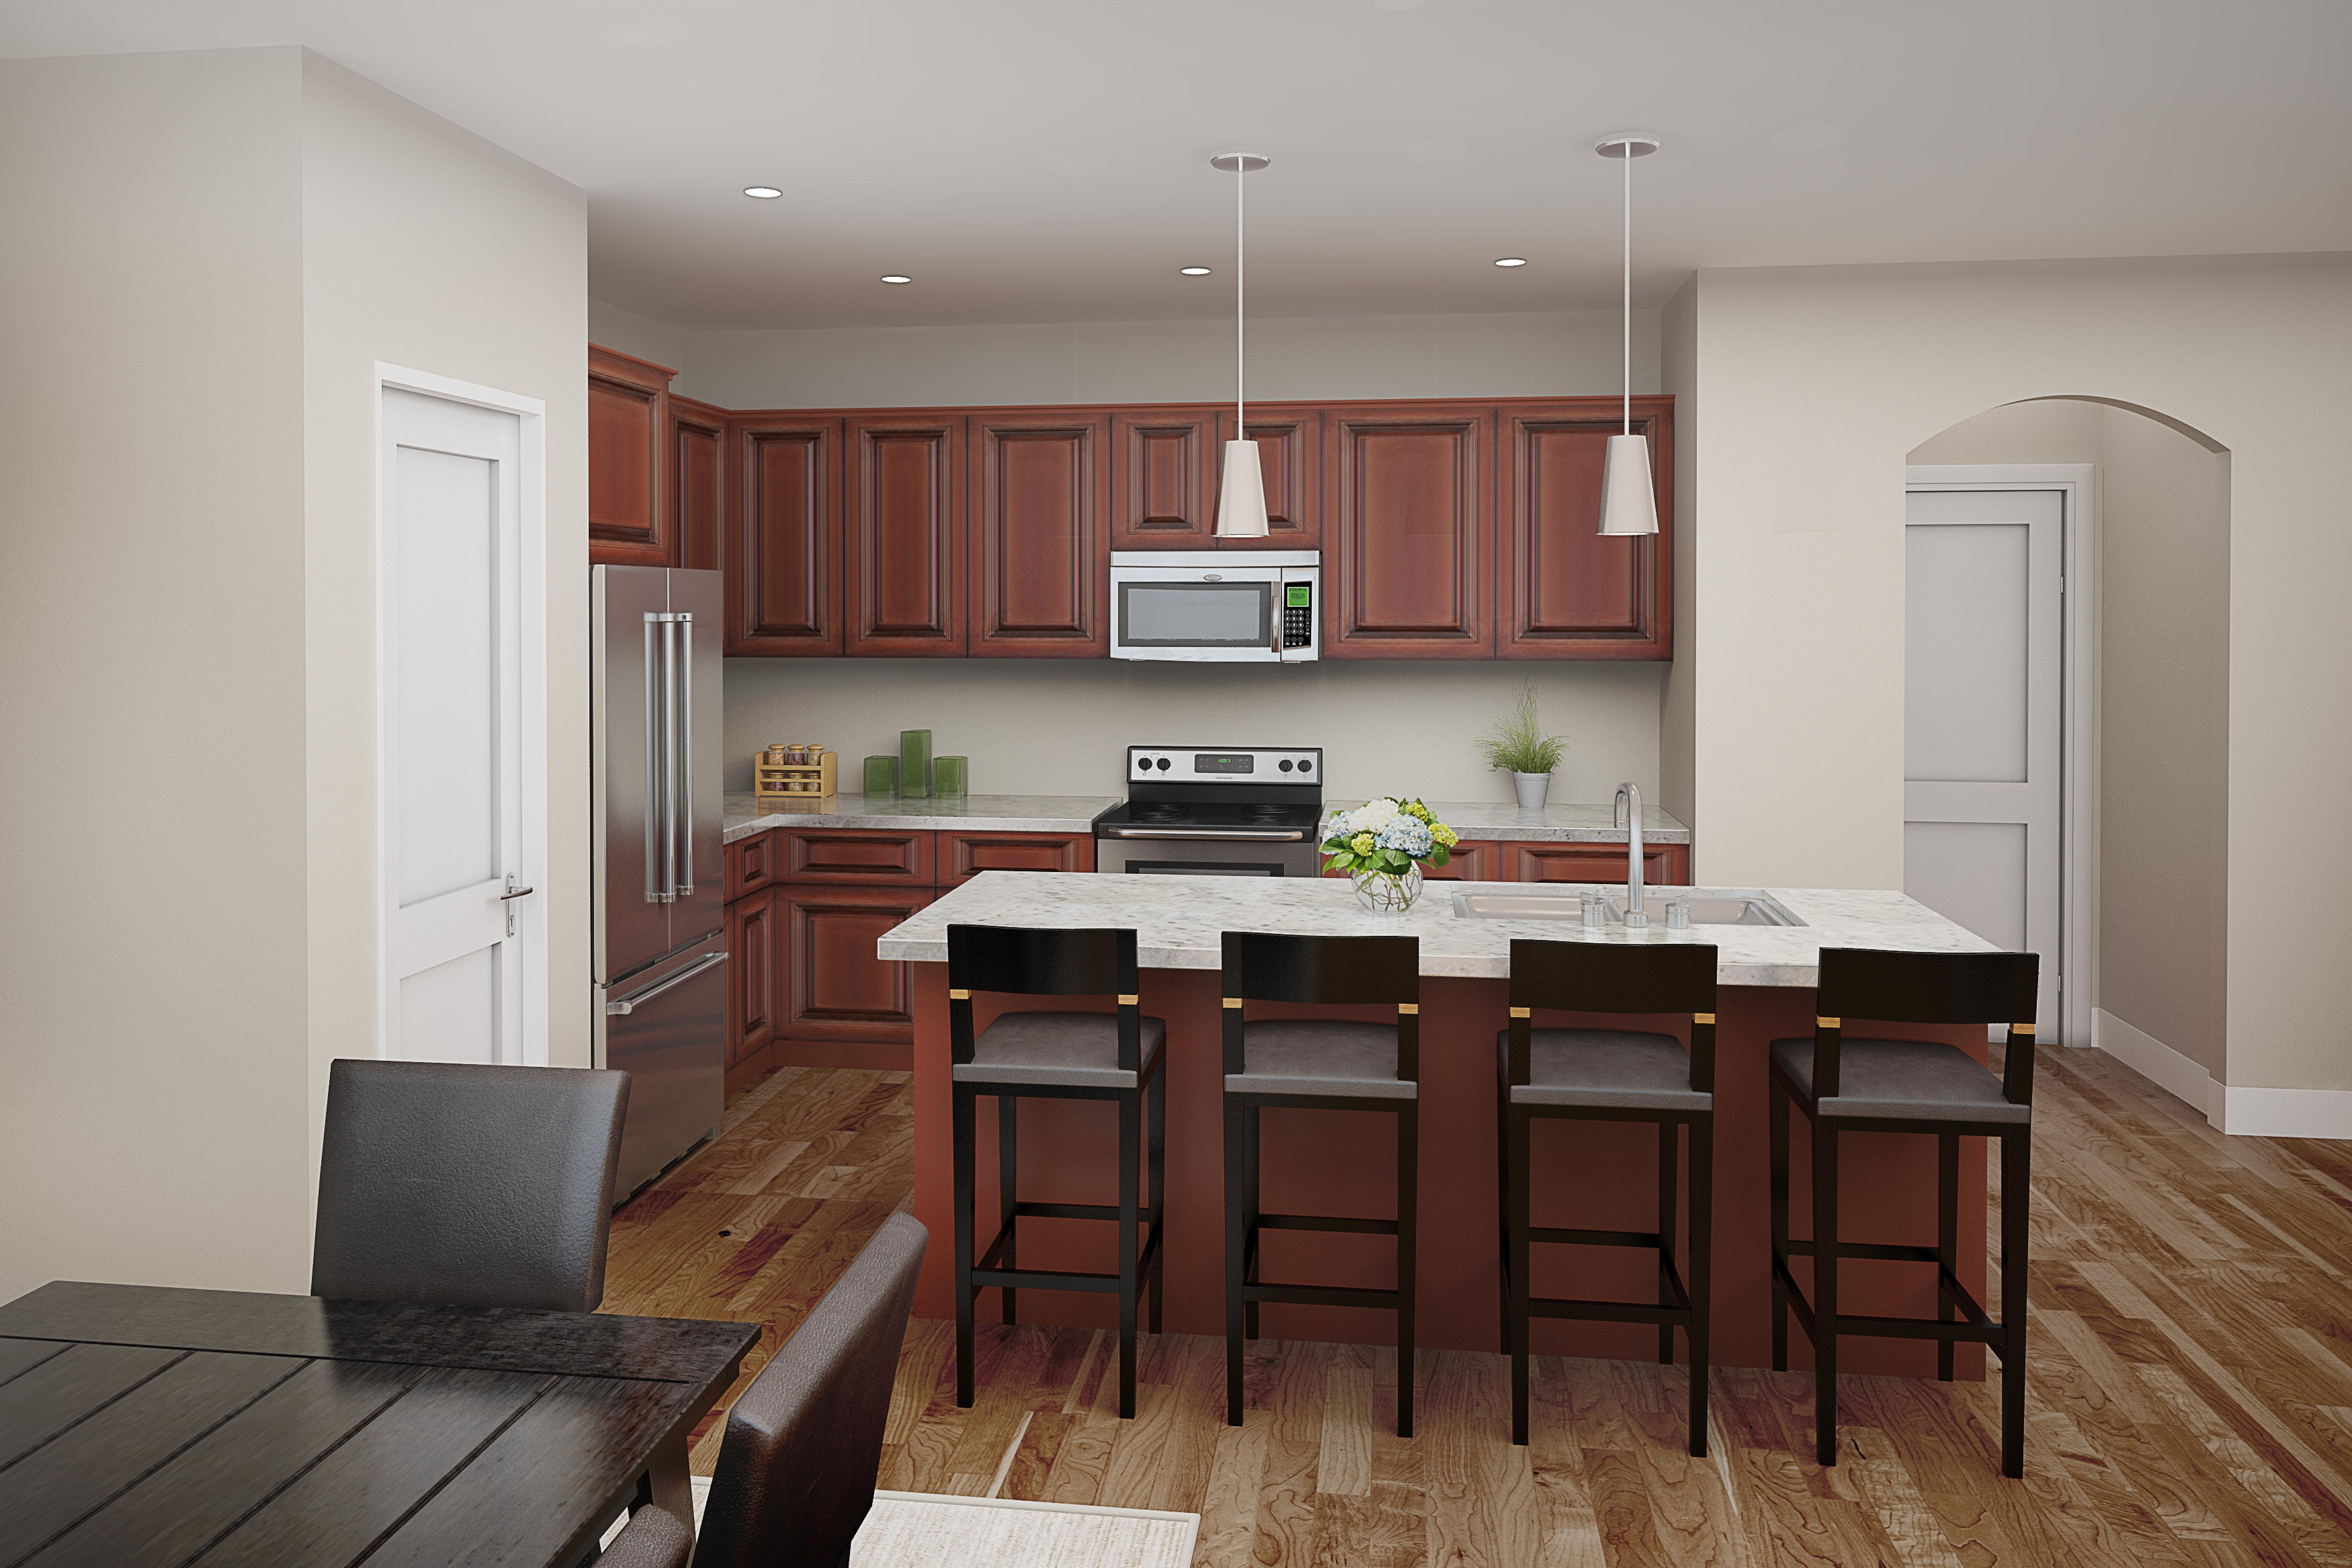 Kitchen featured in The Willow By Dottco Homes in Sacramento, CA